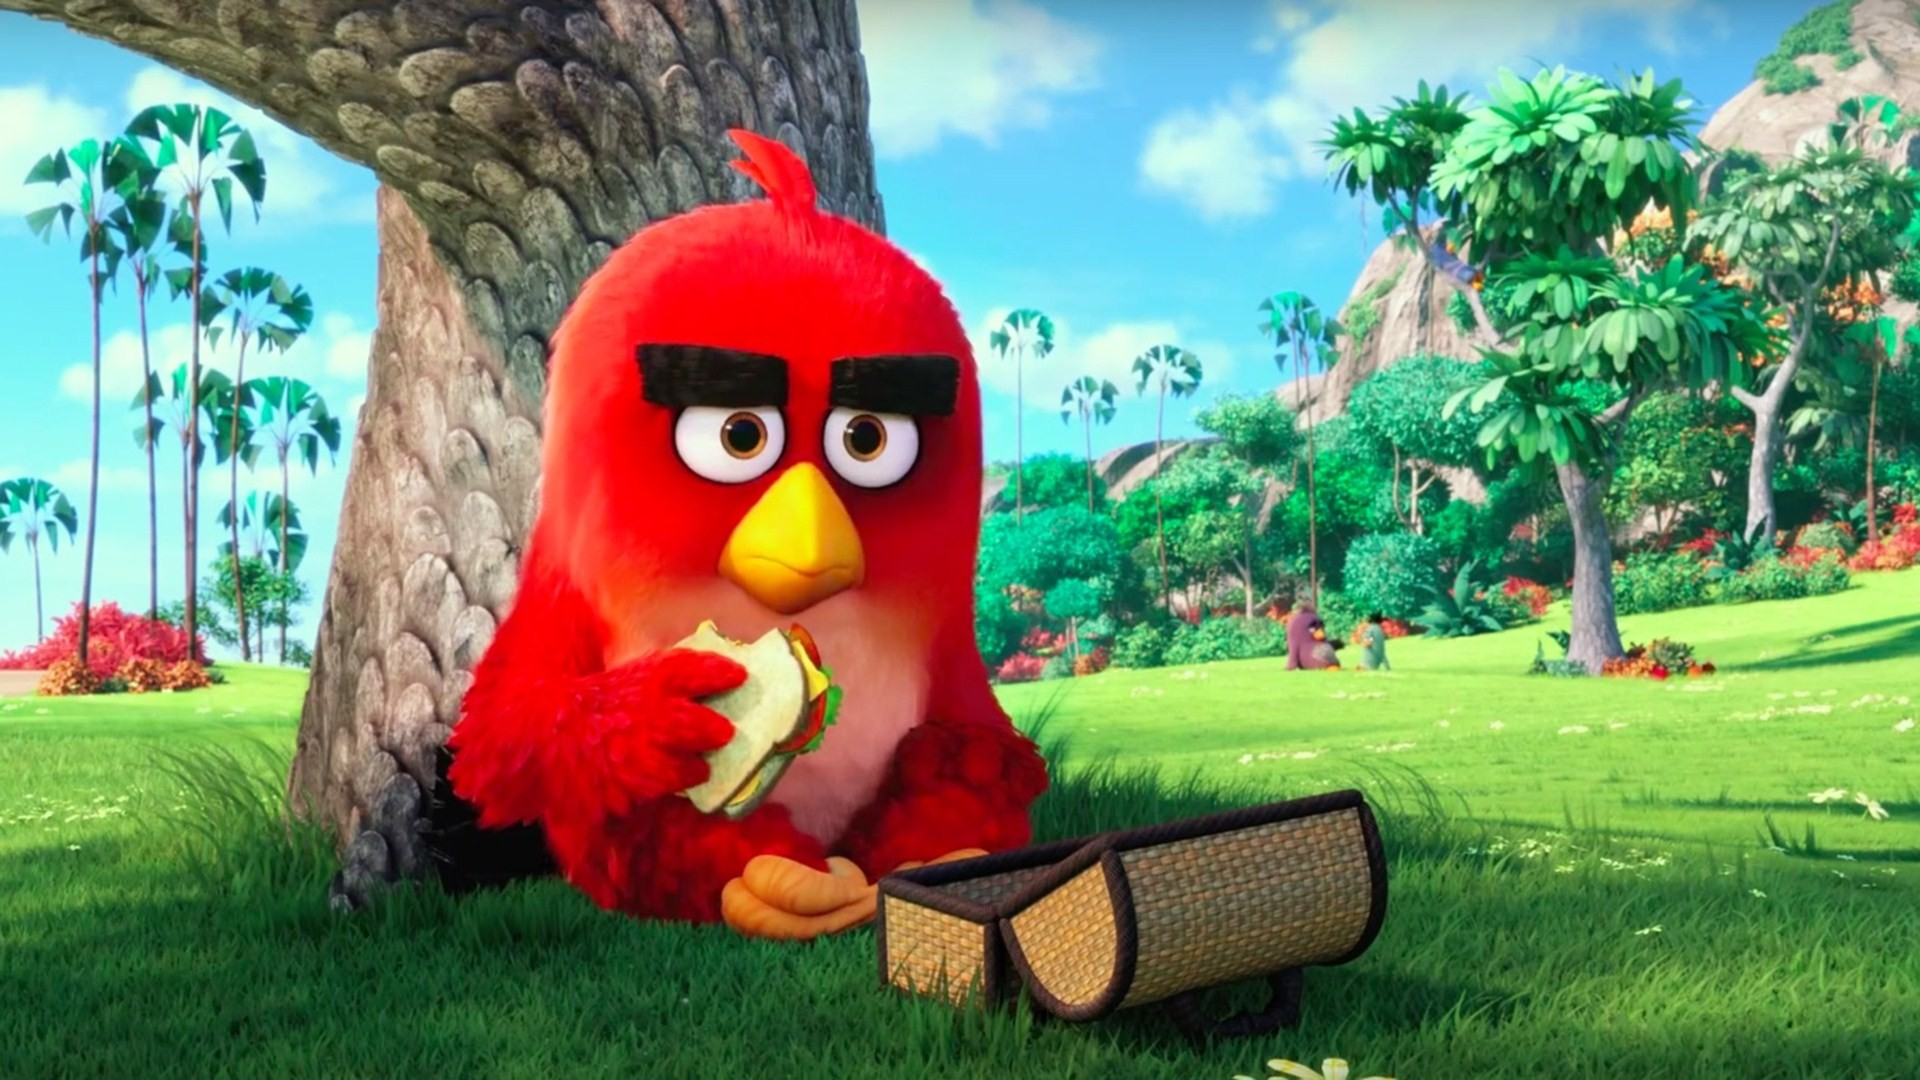 Beautiful Wallpaper Angry Mobile Hd - Angry-Birds-Wallpapers-018  You Should Have_127523      .jpg